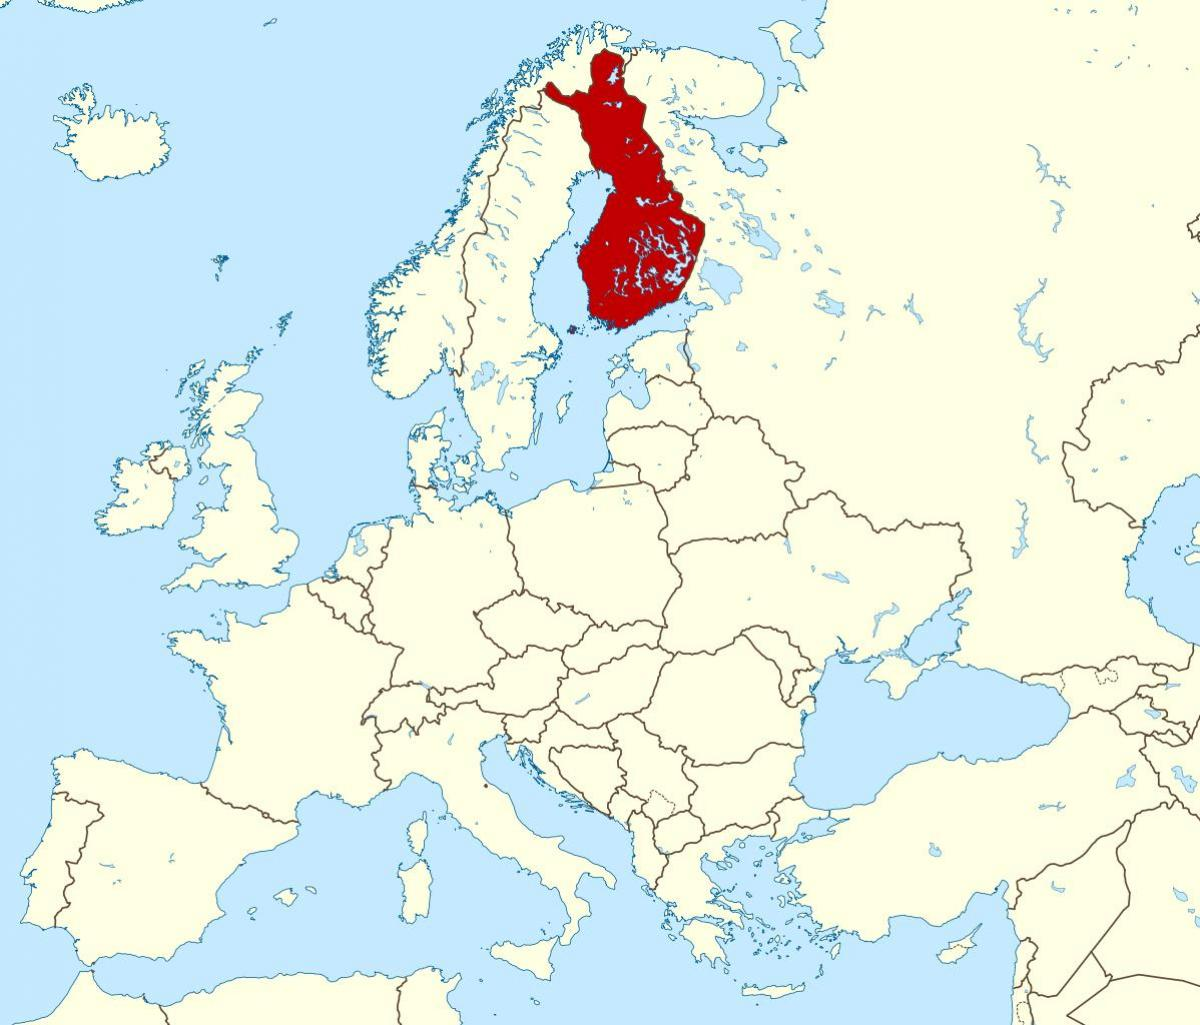 Finland location on world map - World map showing Finland (Northern ...